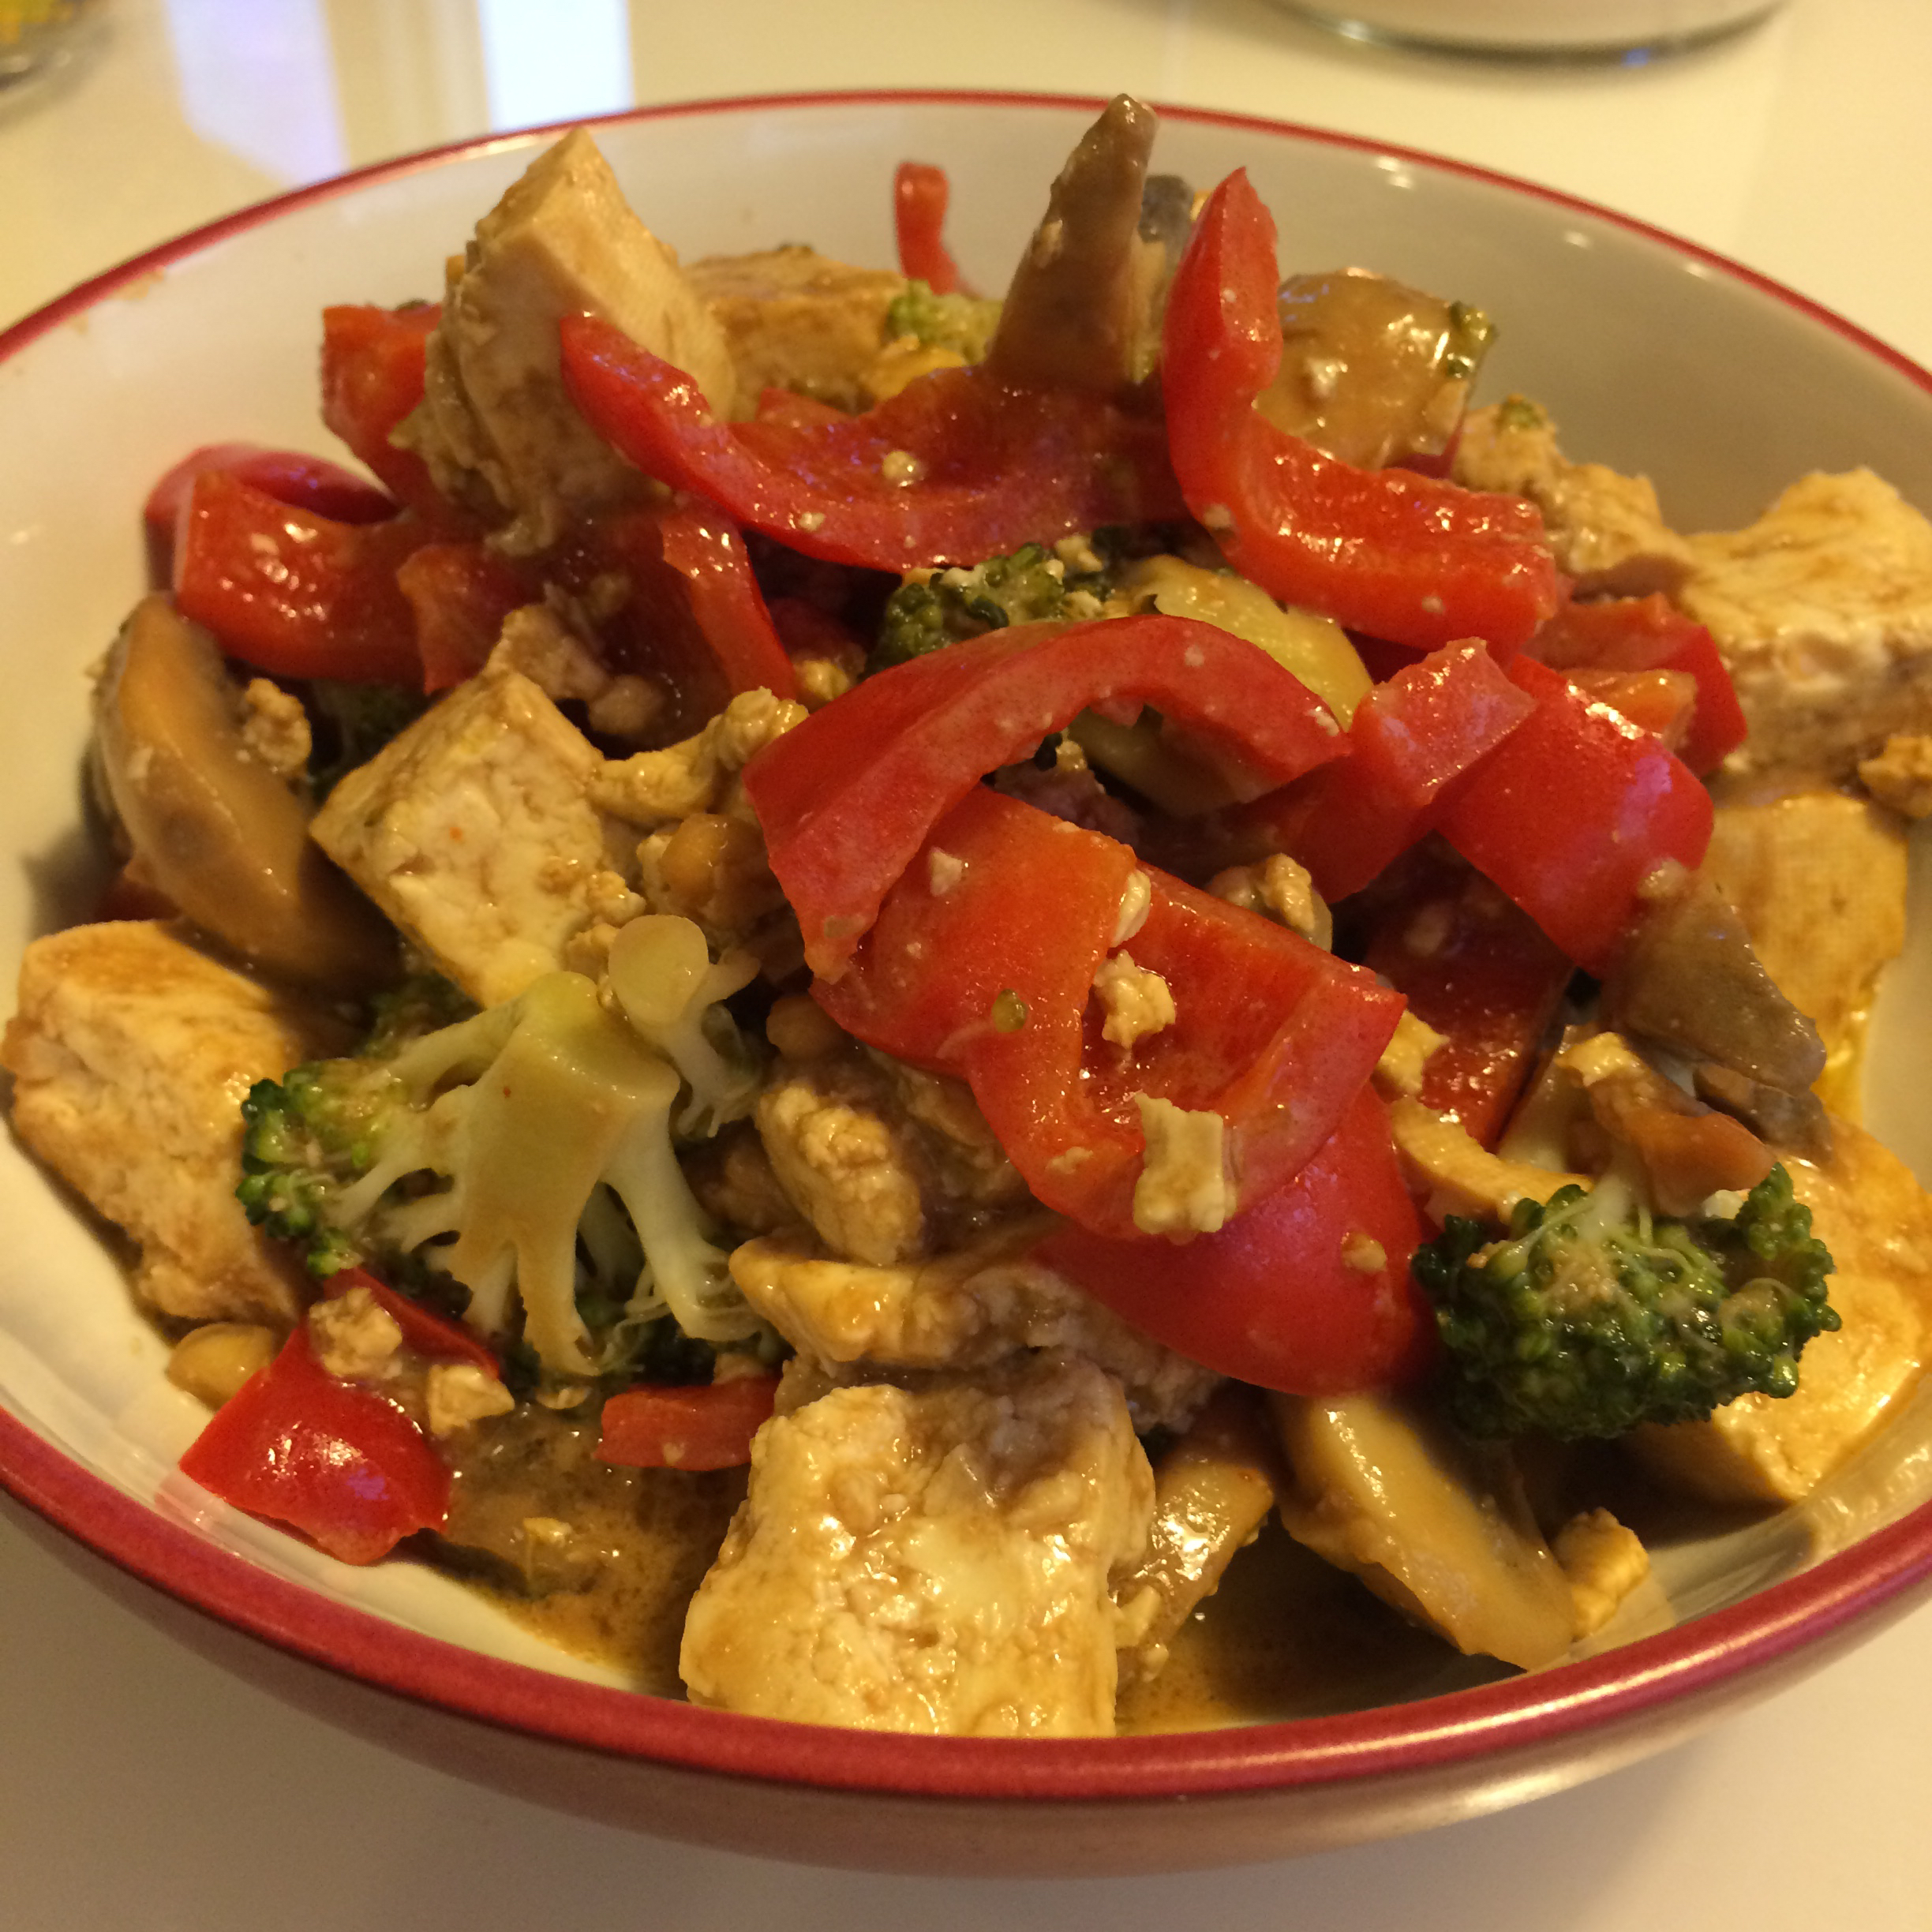 Tofu and Veggies in Peanut Sauce